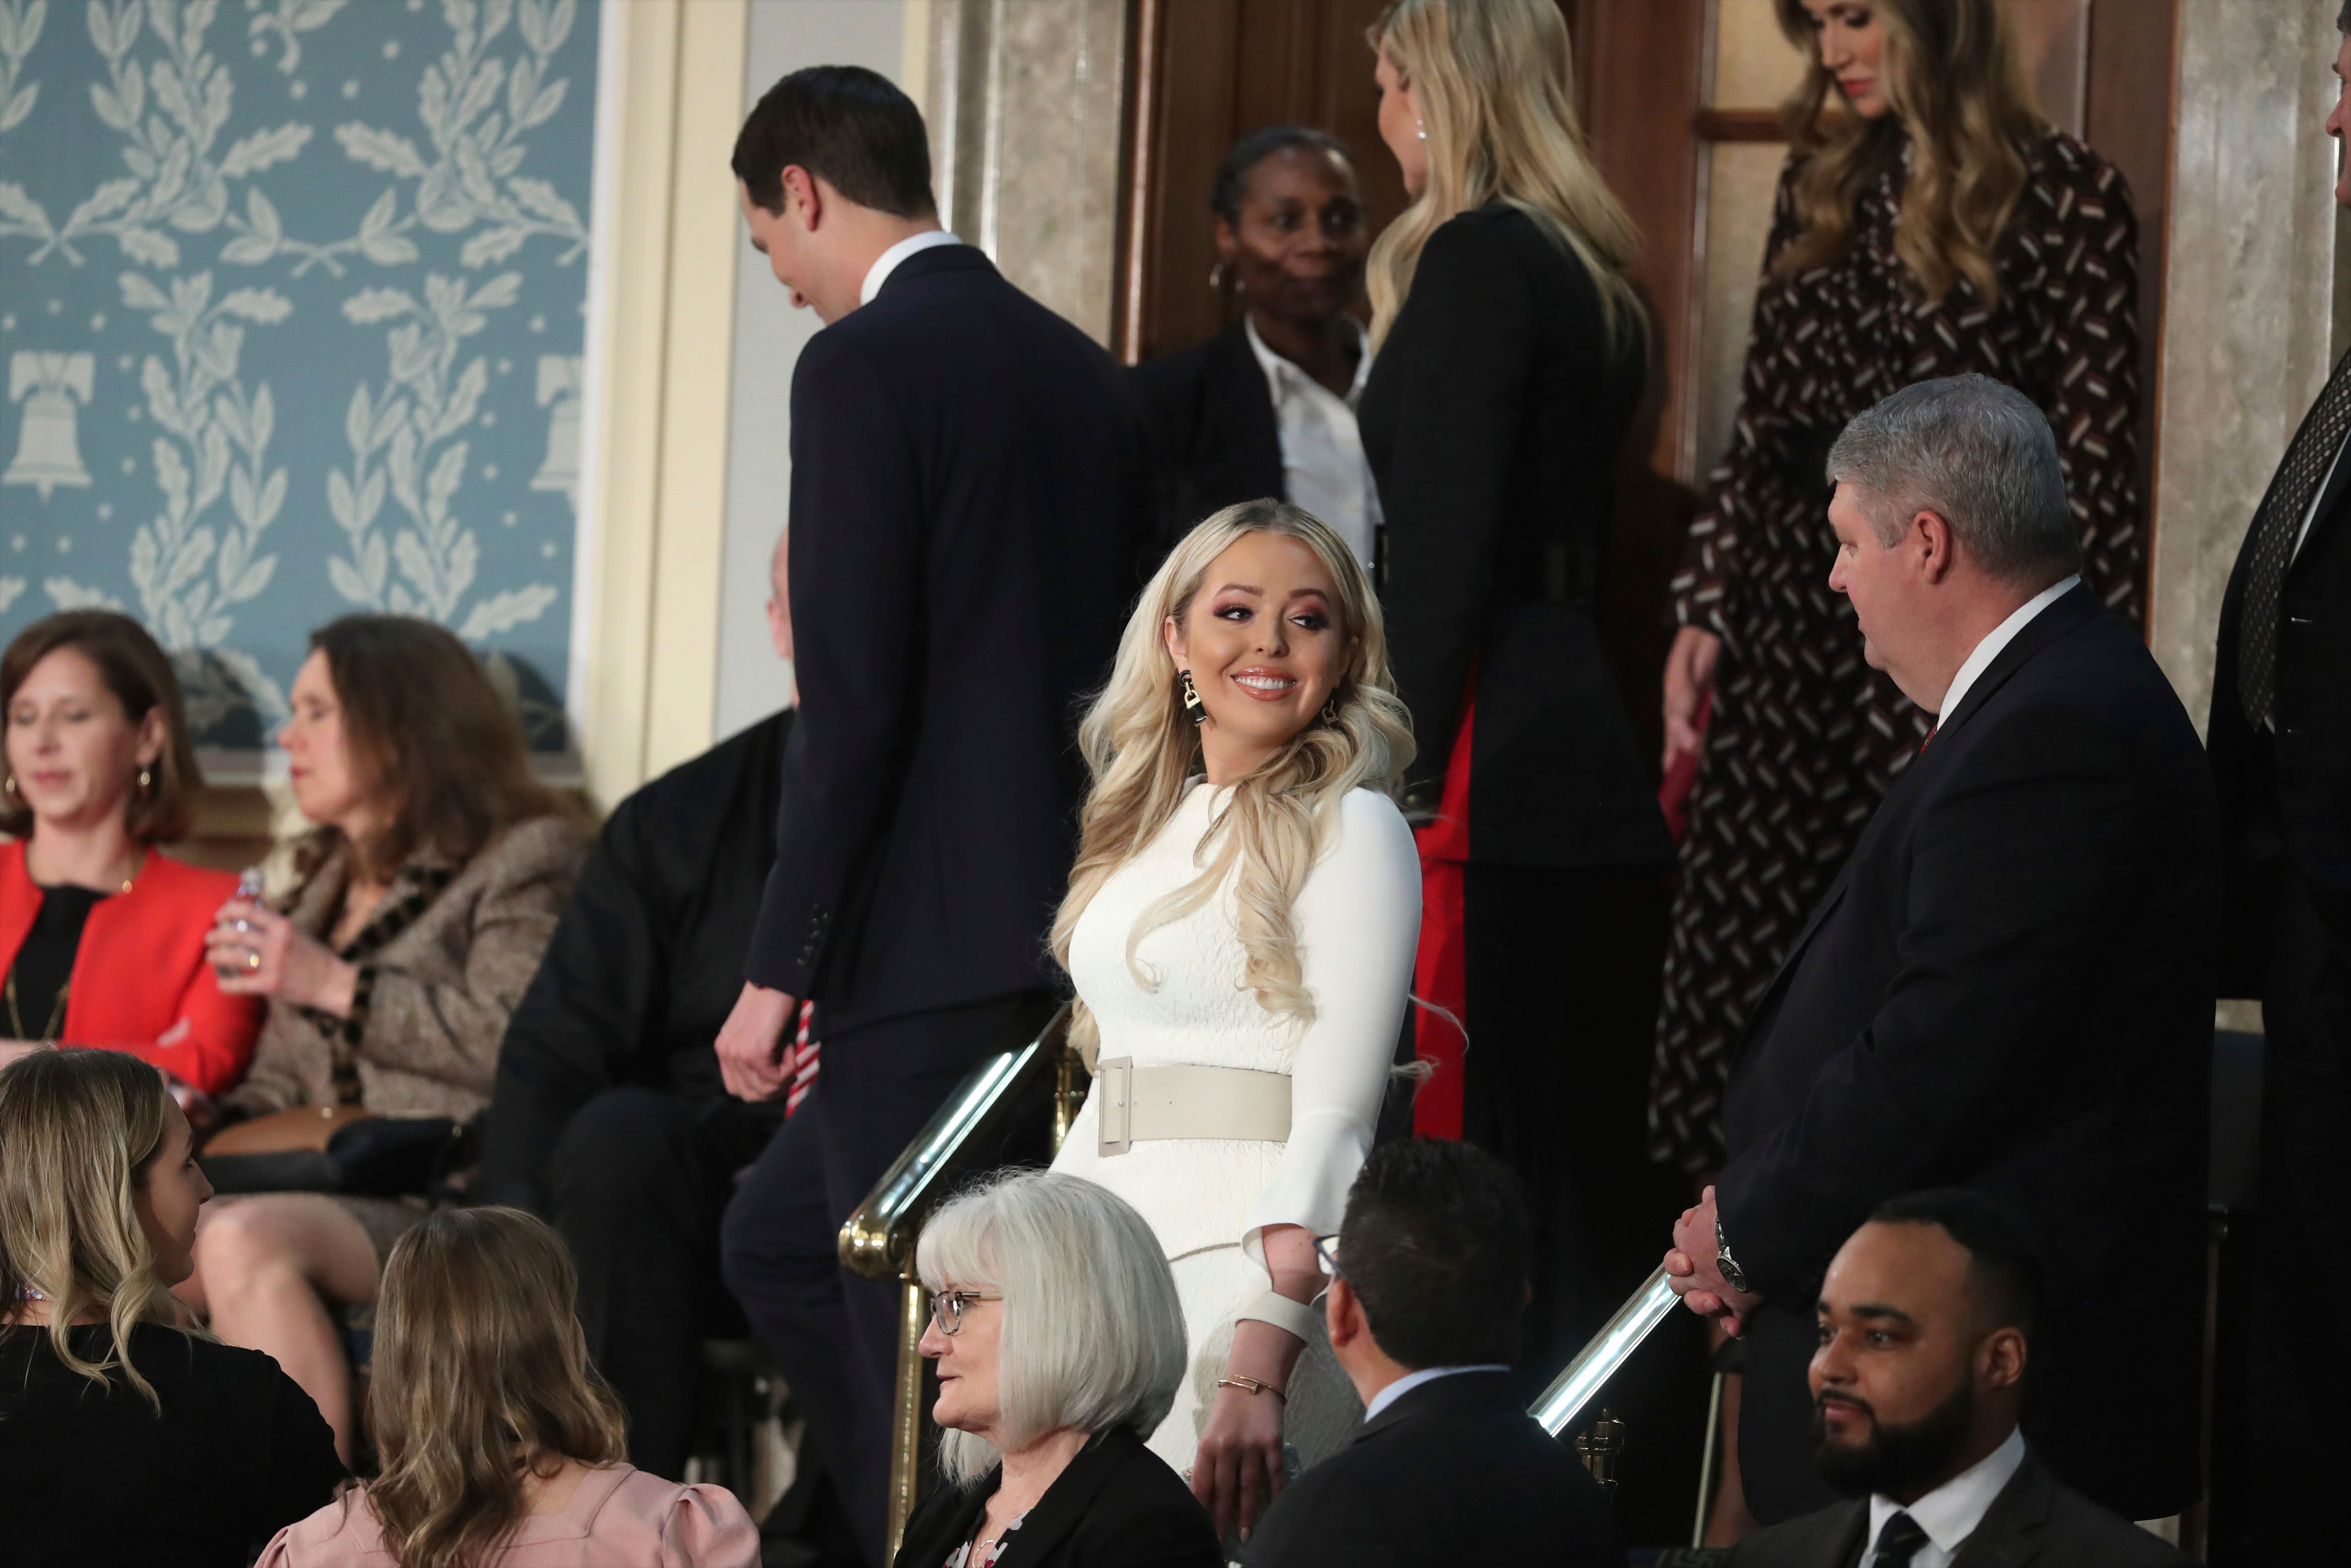 Tiffany Trump wears white, the color chosen by Democrats as a political statement, at State of the Union